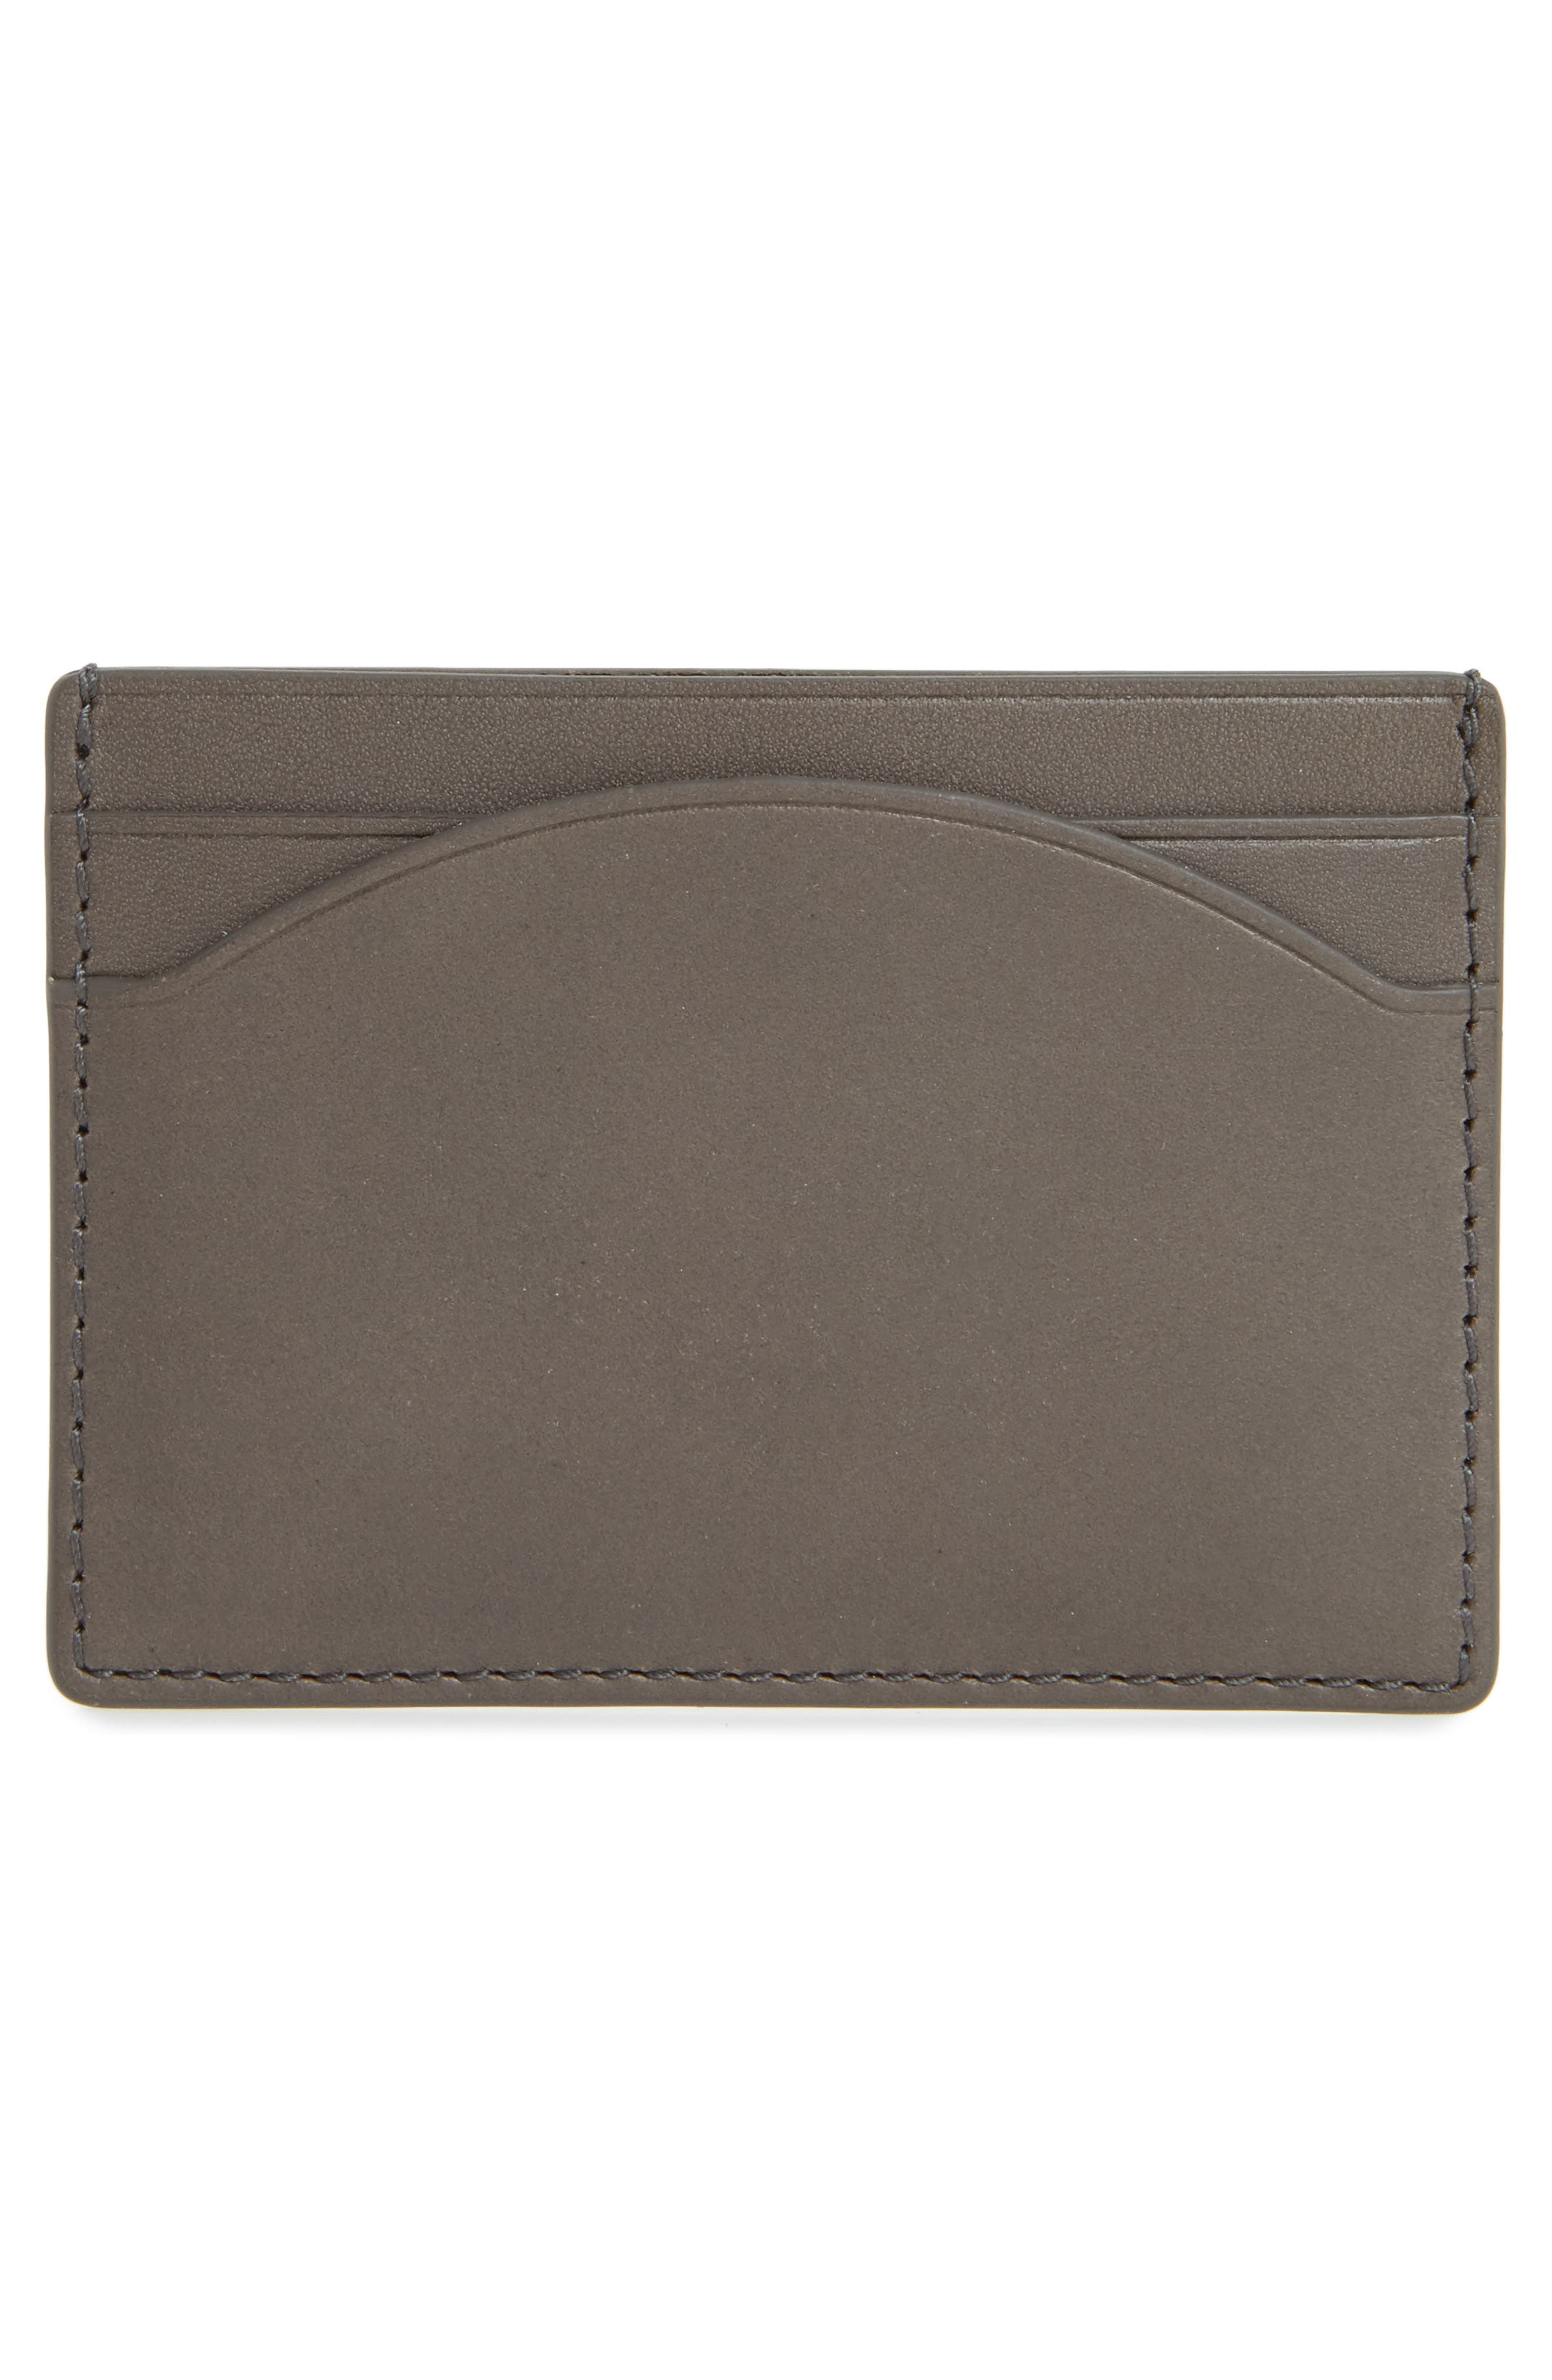 Leather Card Case,                             Alternate thumbnail 2, color,                             020